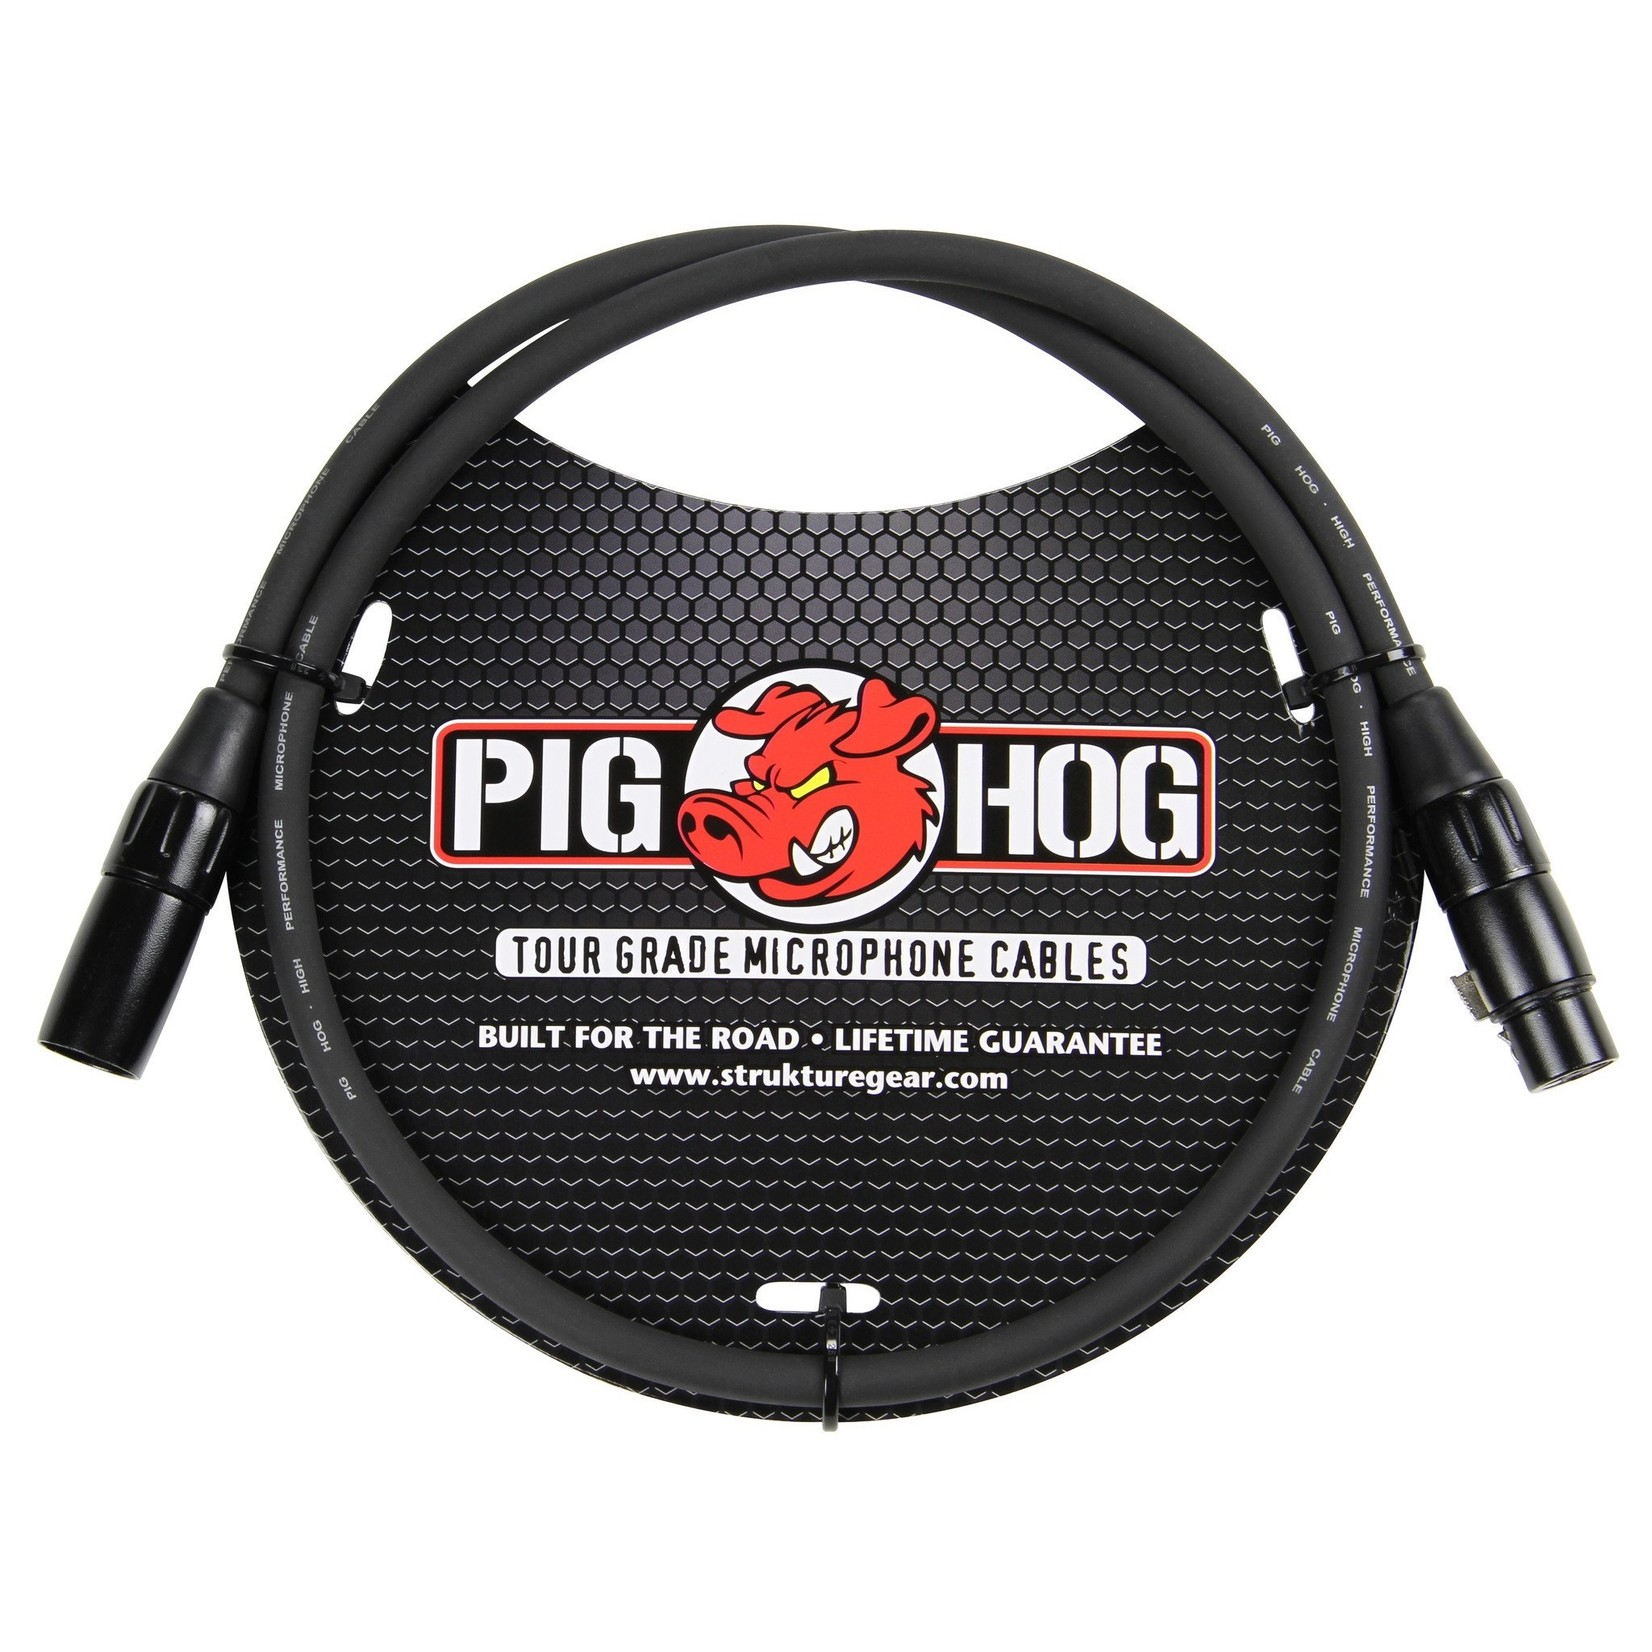 Pig Hog Pig Hog 8mm Tour Grade Microphone Cable, 3ft XLR Black (3', 3-foot)